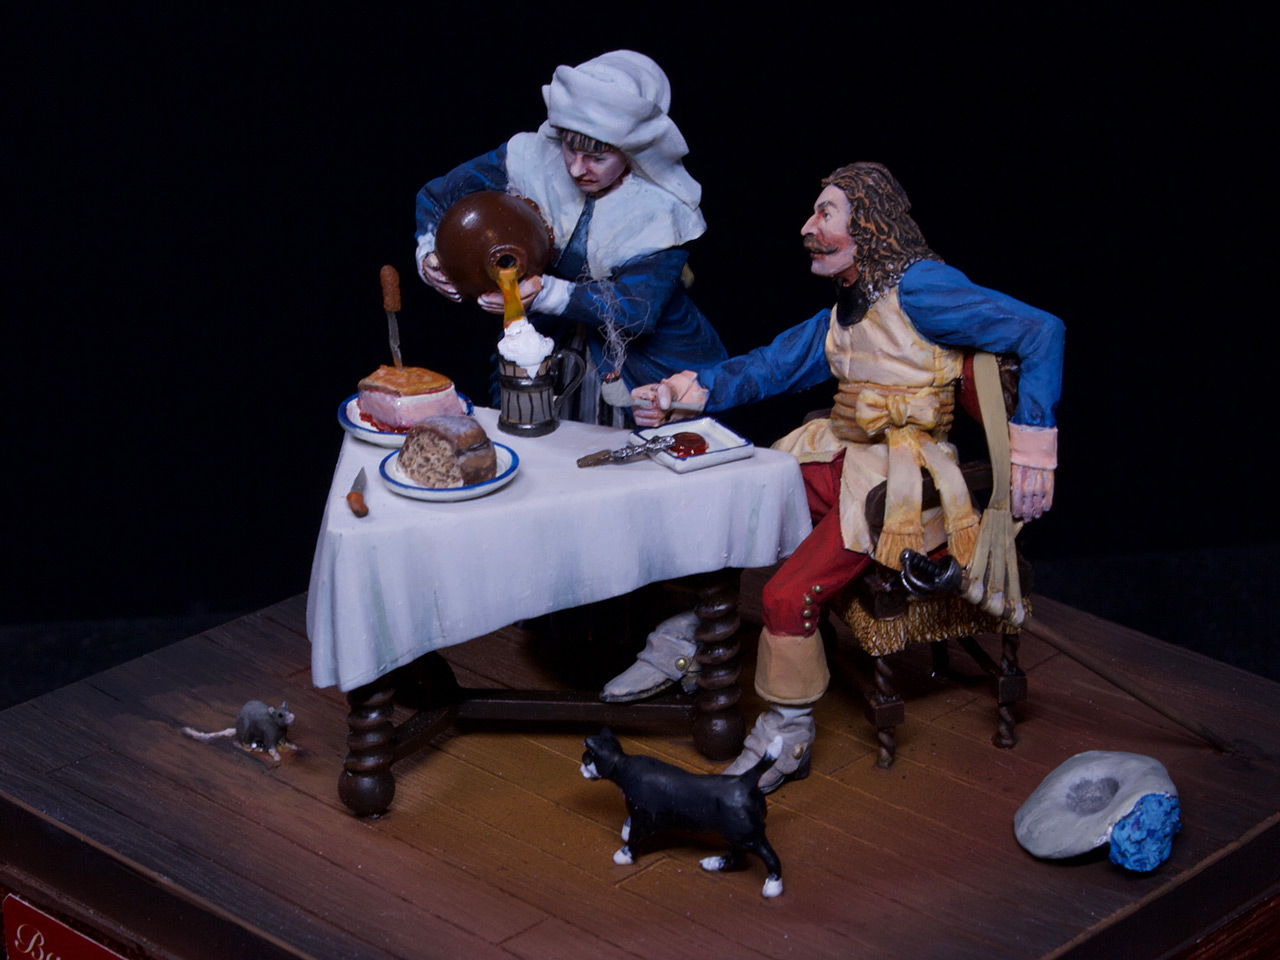 Dioramas and Vignettes: Waitress and cavalier, photo #7